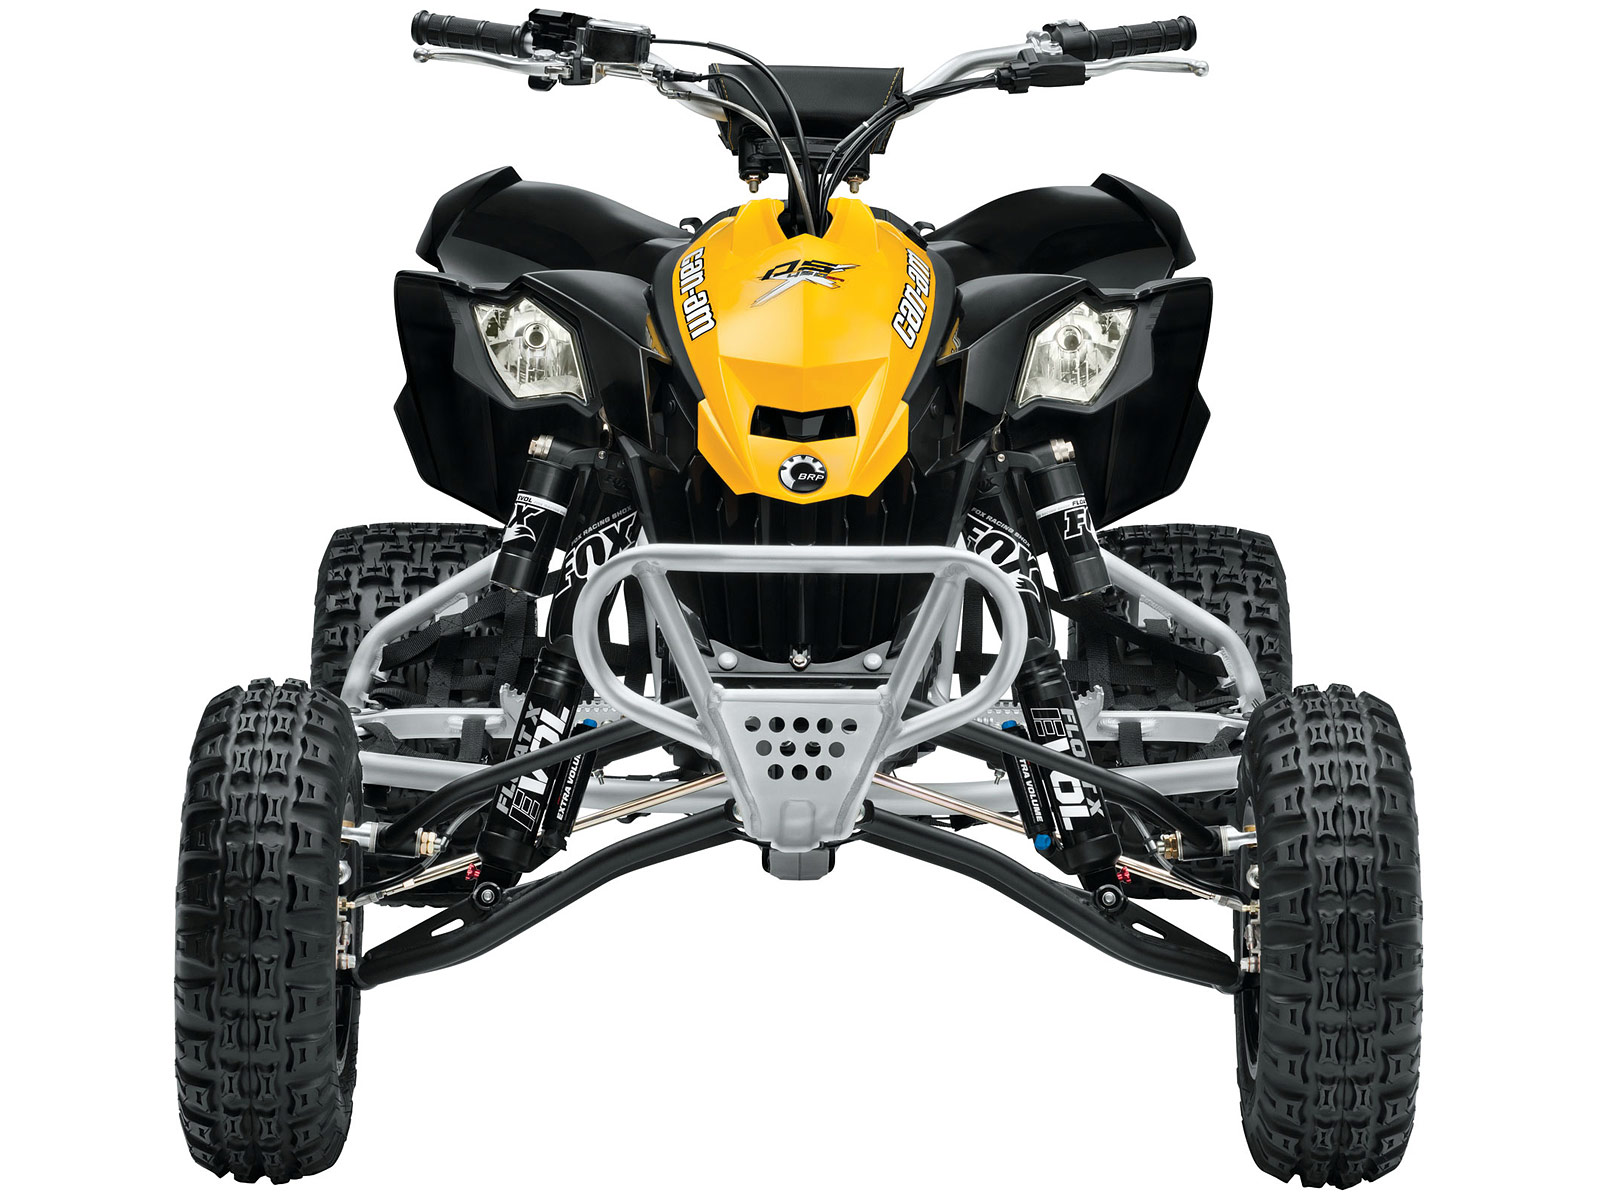 ... 2013 Can-Am DS 450 Xmx ATV pictures 4